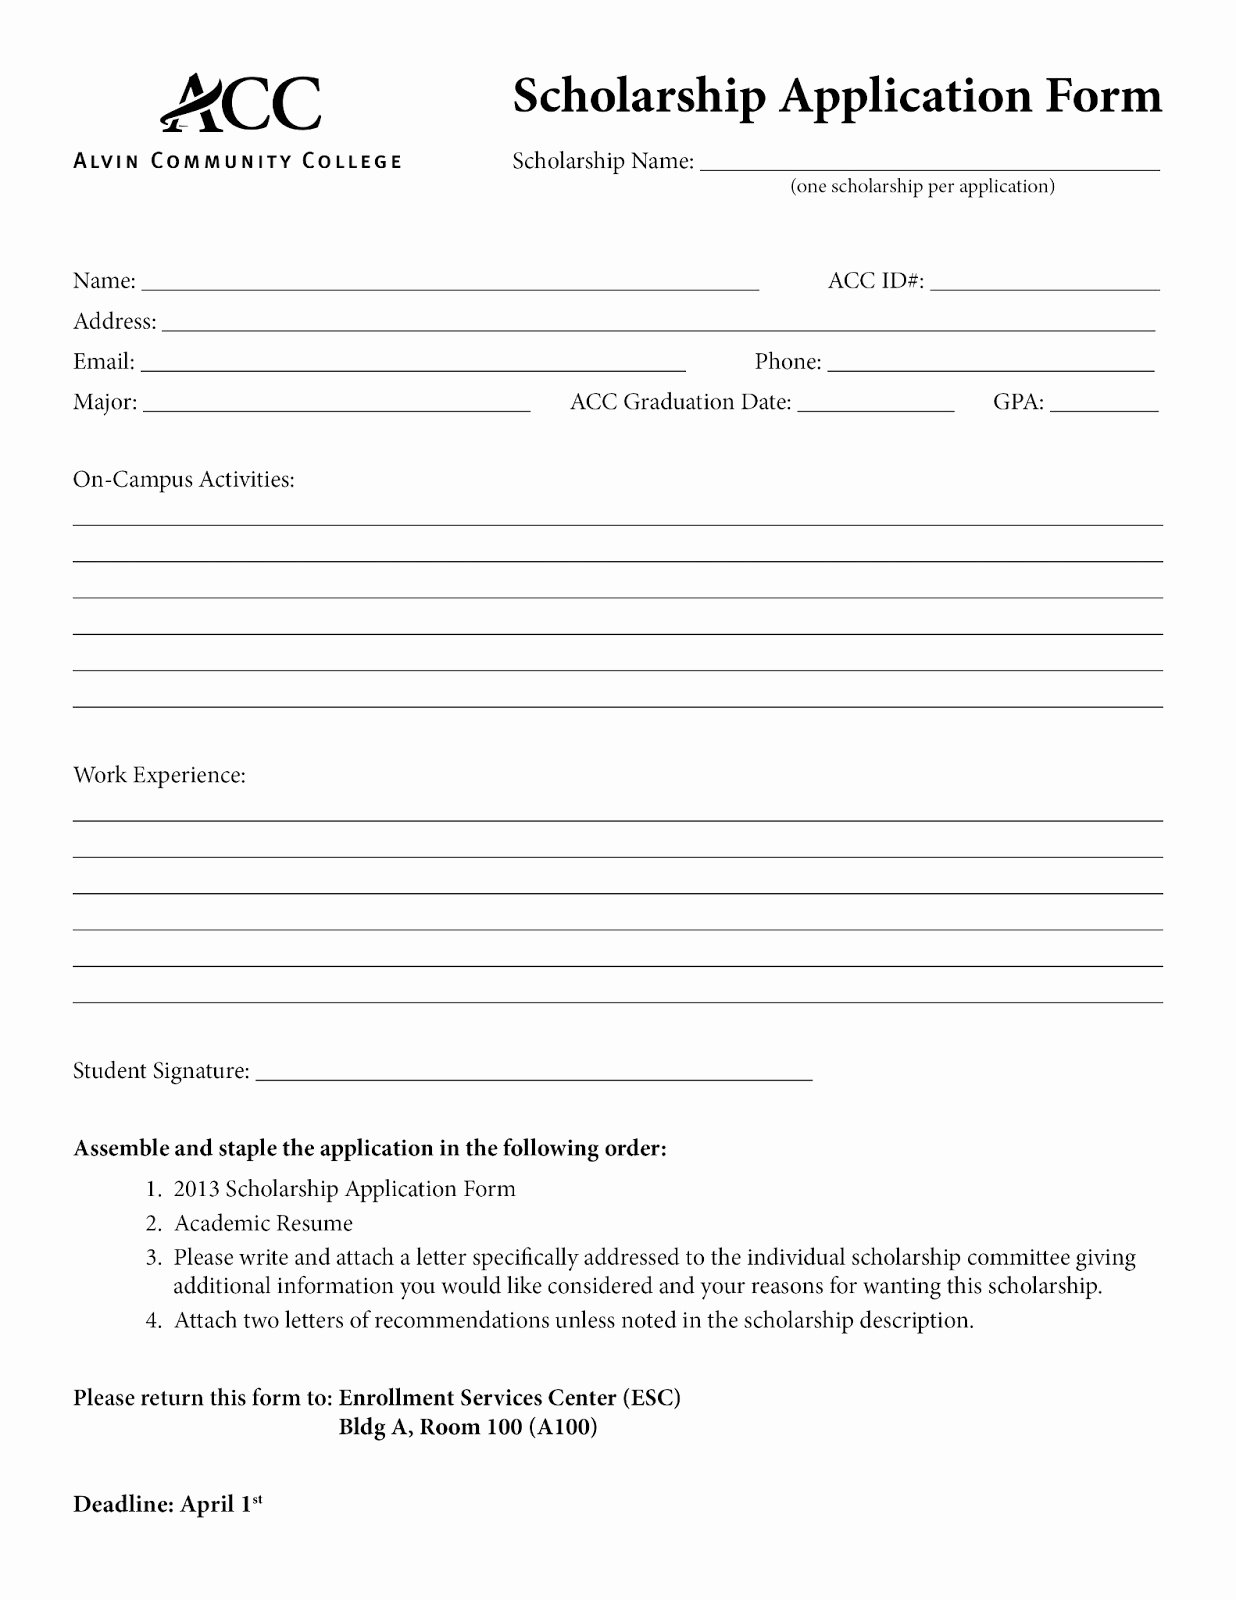 Application form Basic Application form Template